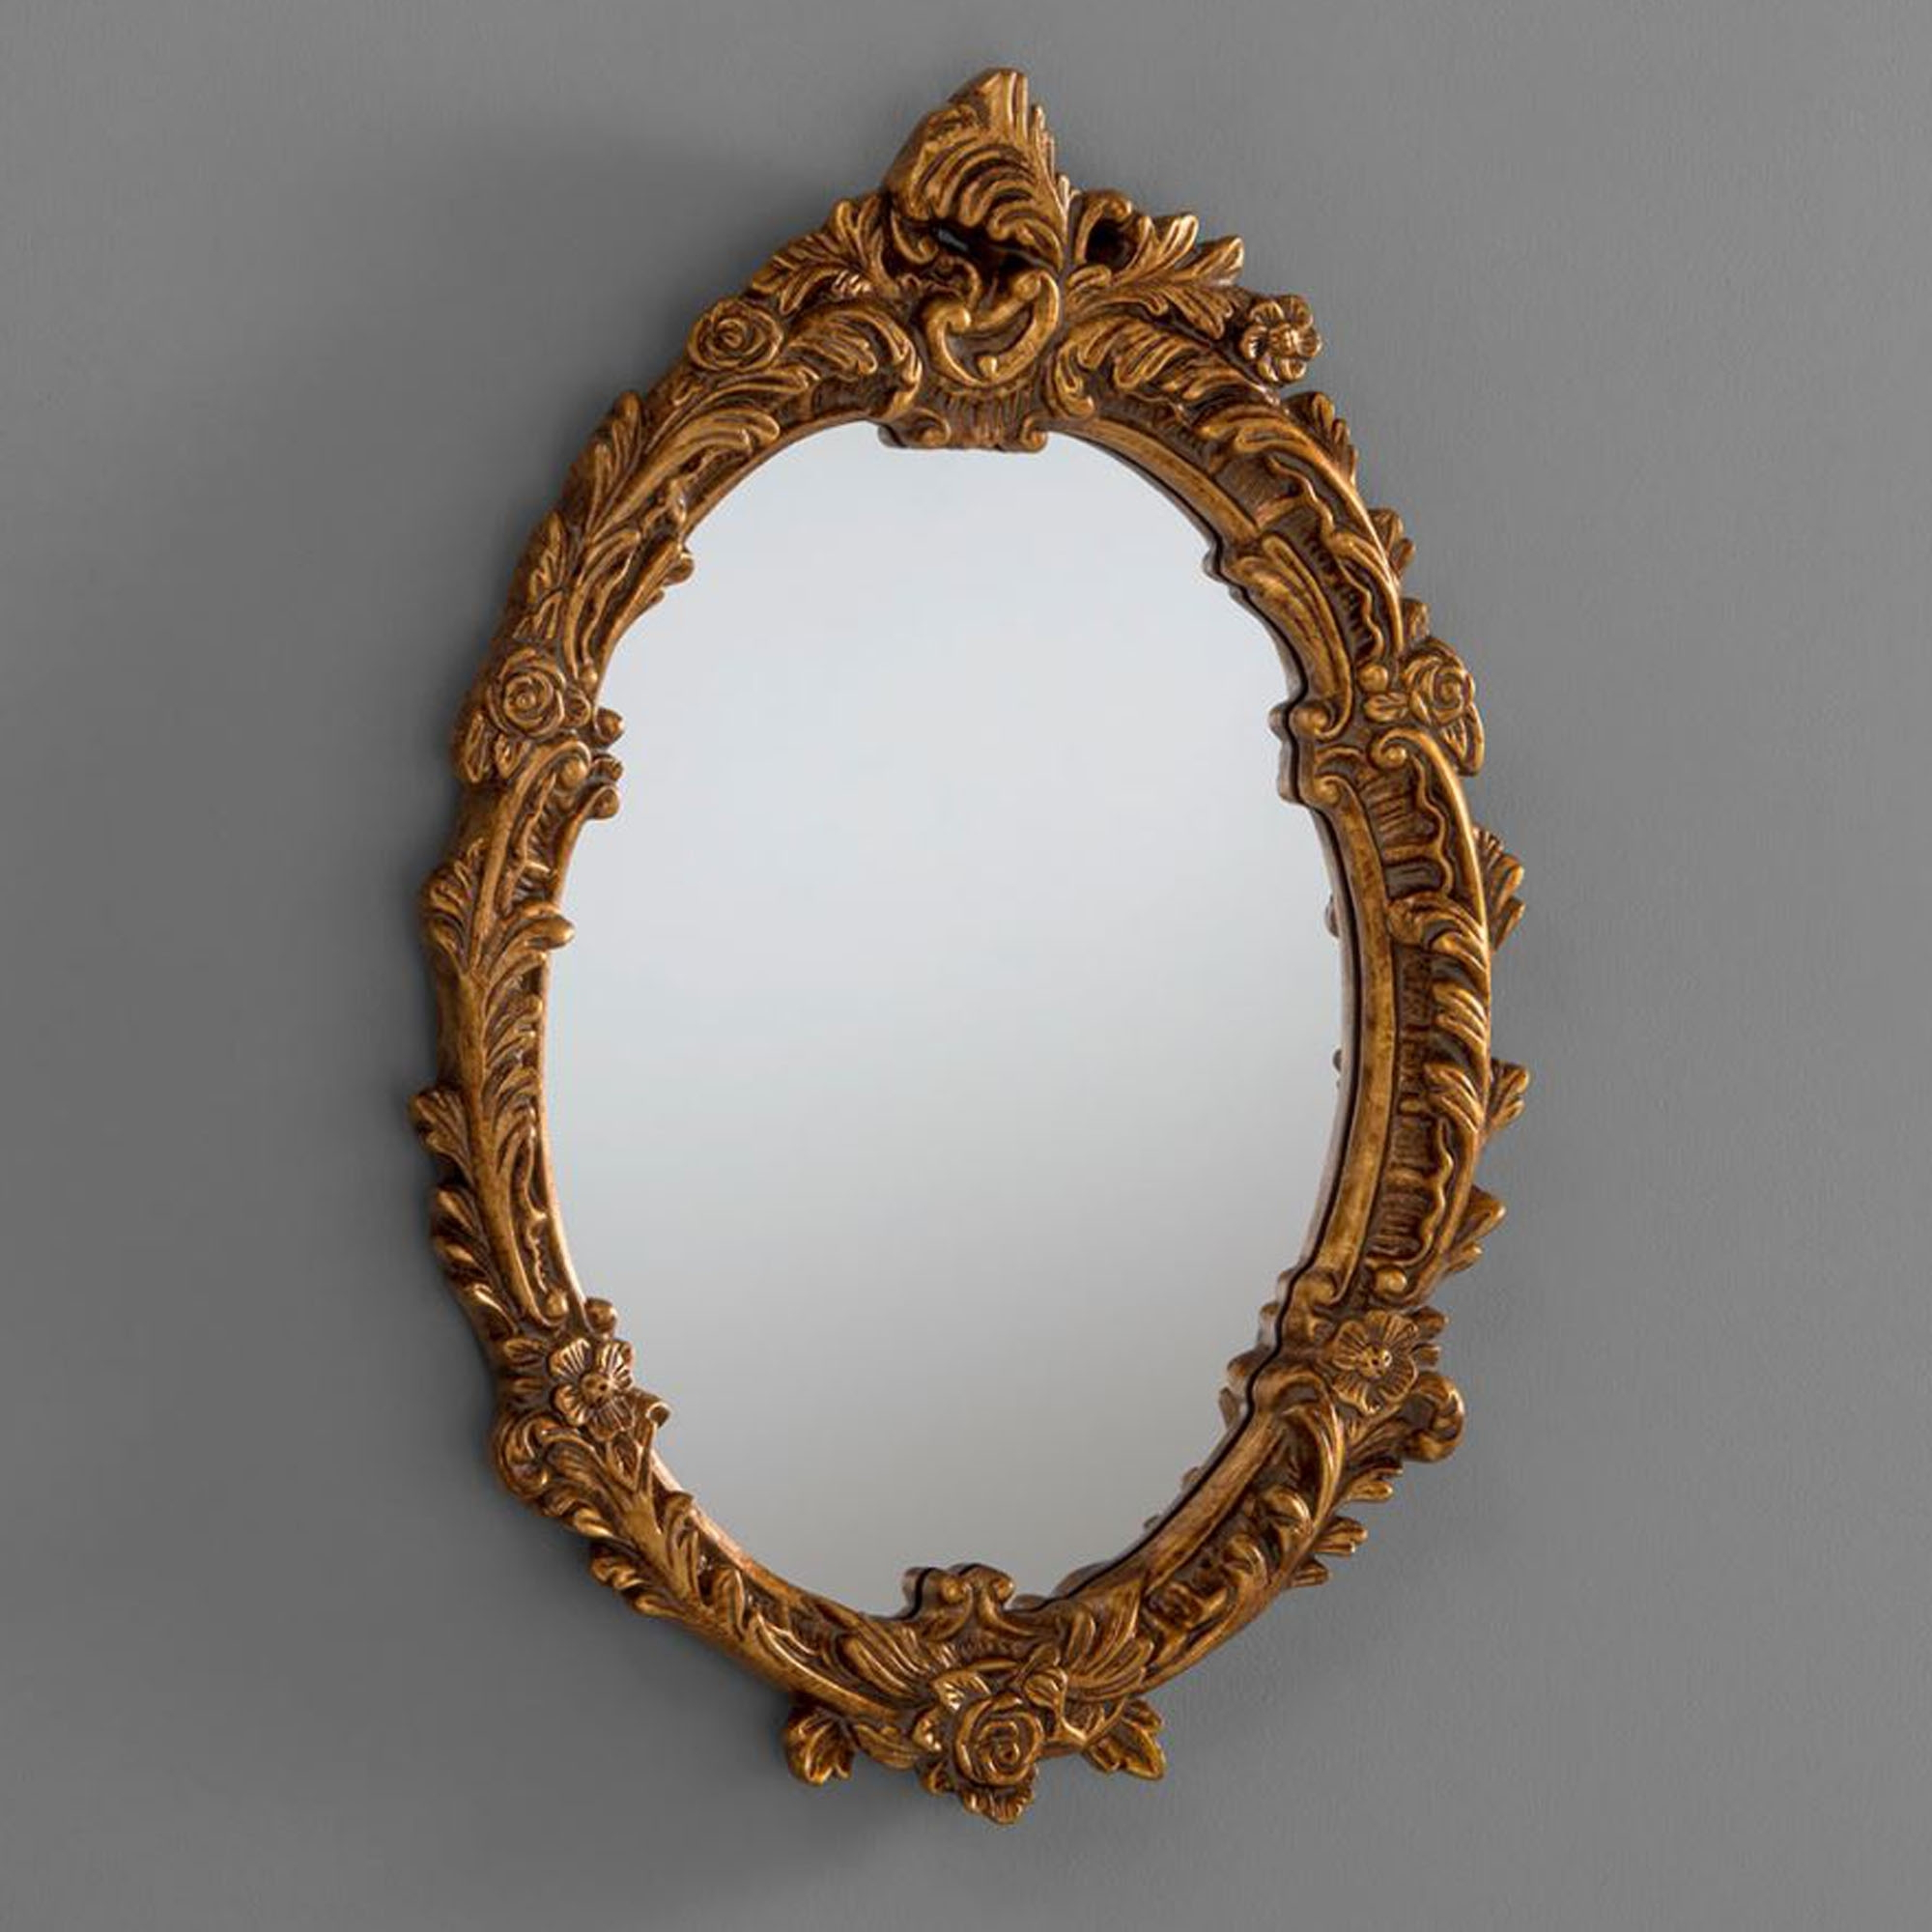 Popular Antique French Style Oval Gold Ornate Wall Mirror Within Antique Oval Wall Mirrors (View 14 of 20)